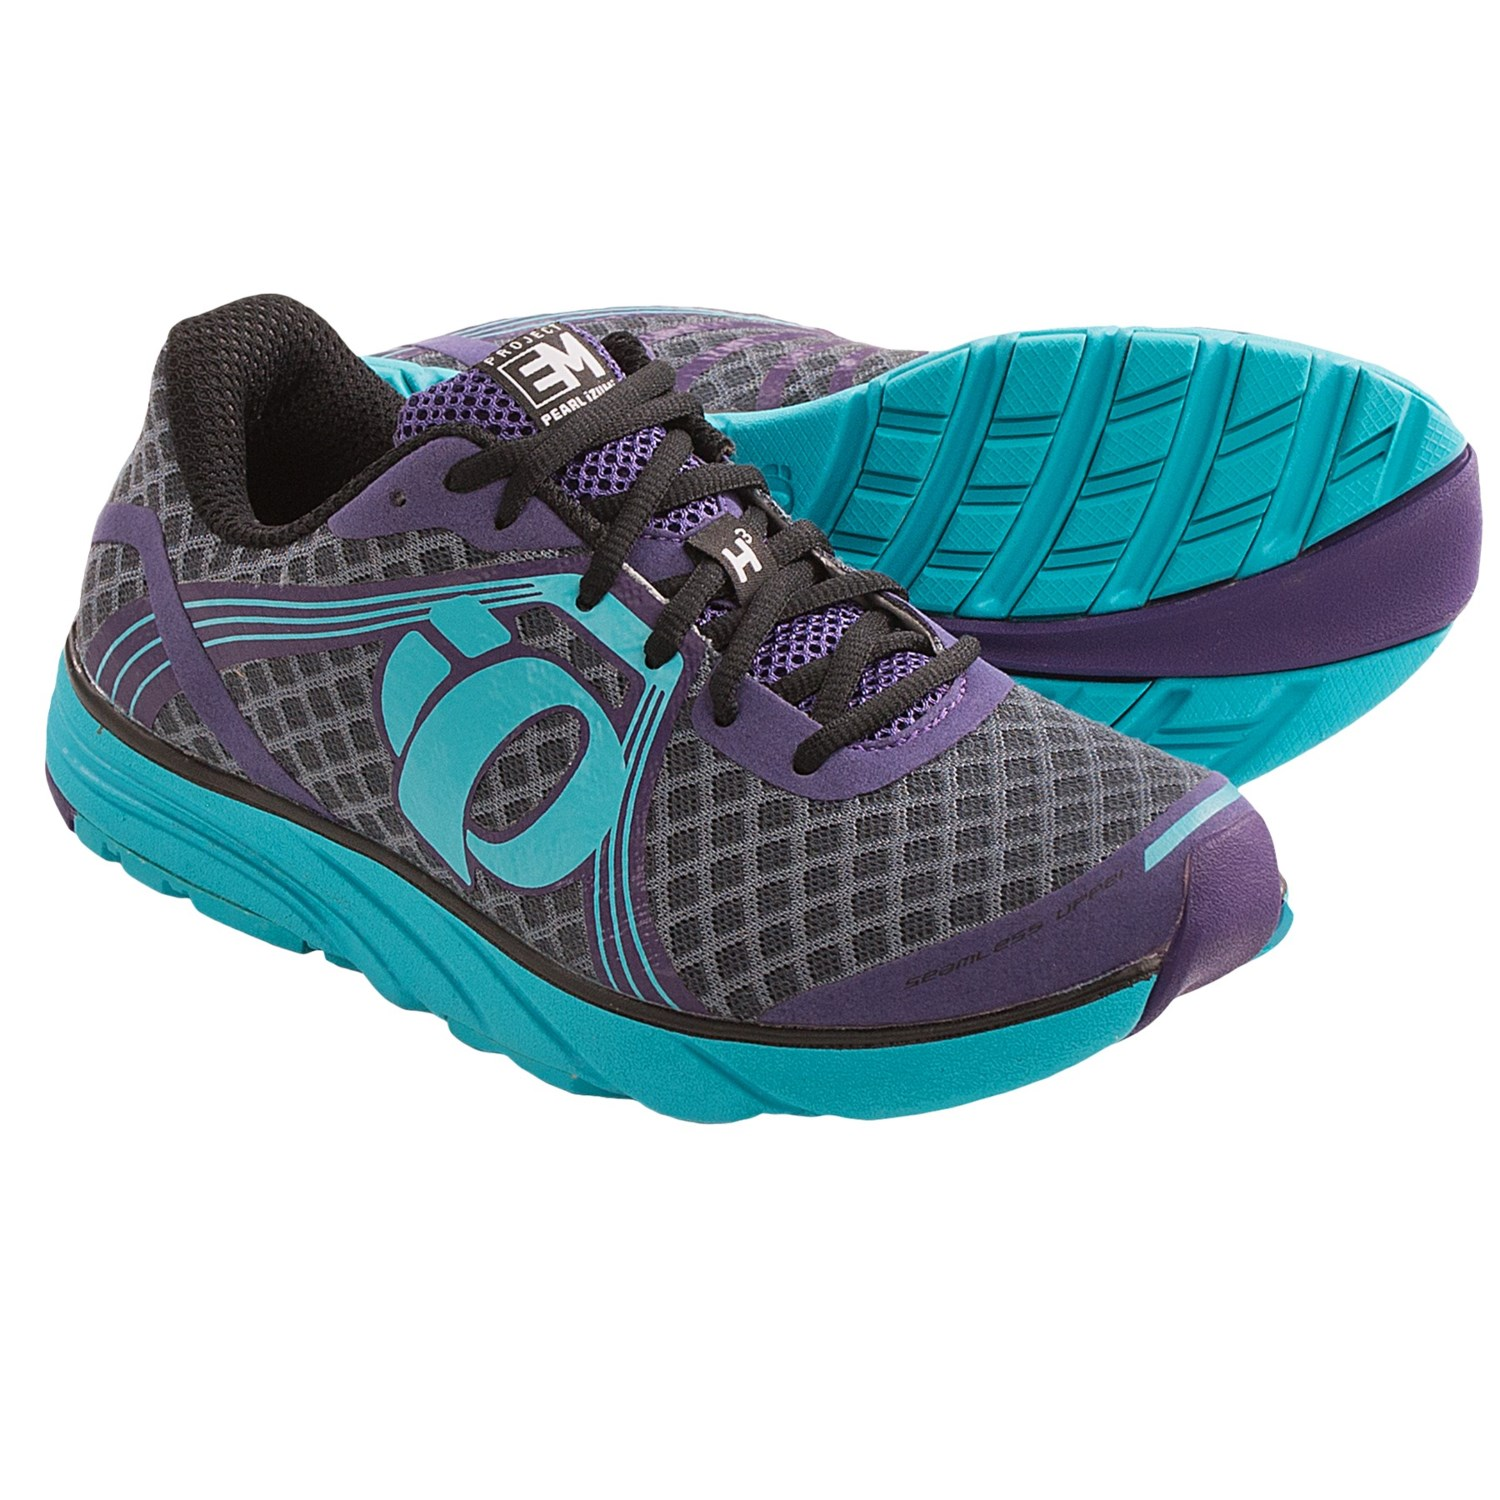 Pearl Izumi isoTransition women's shoe review | dailymile